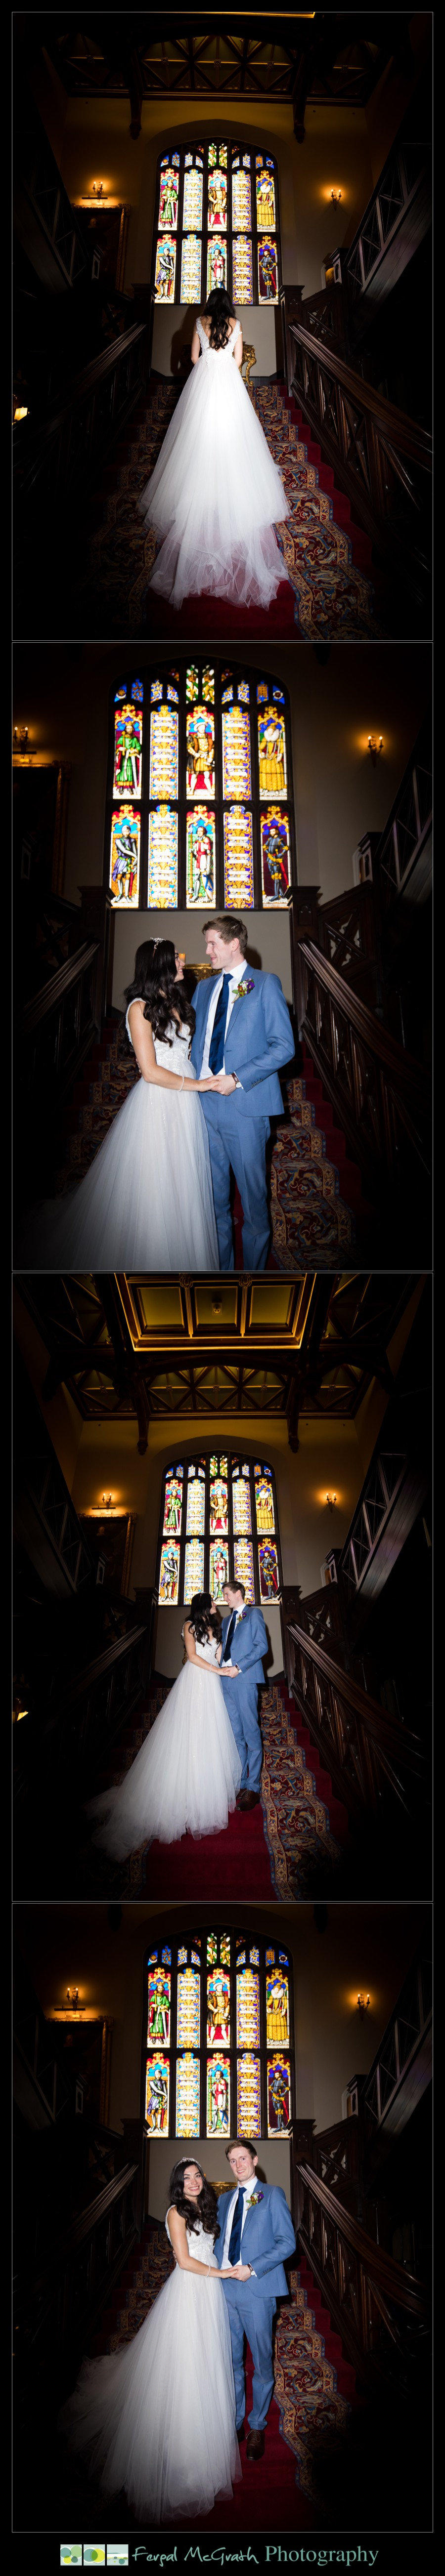 Markree Castle Wedding photos with the beautiful staircase and stained glass windows